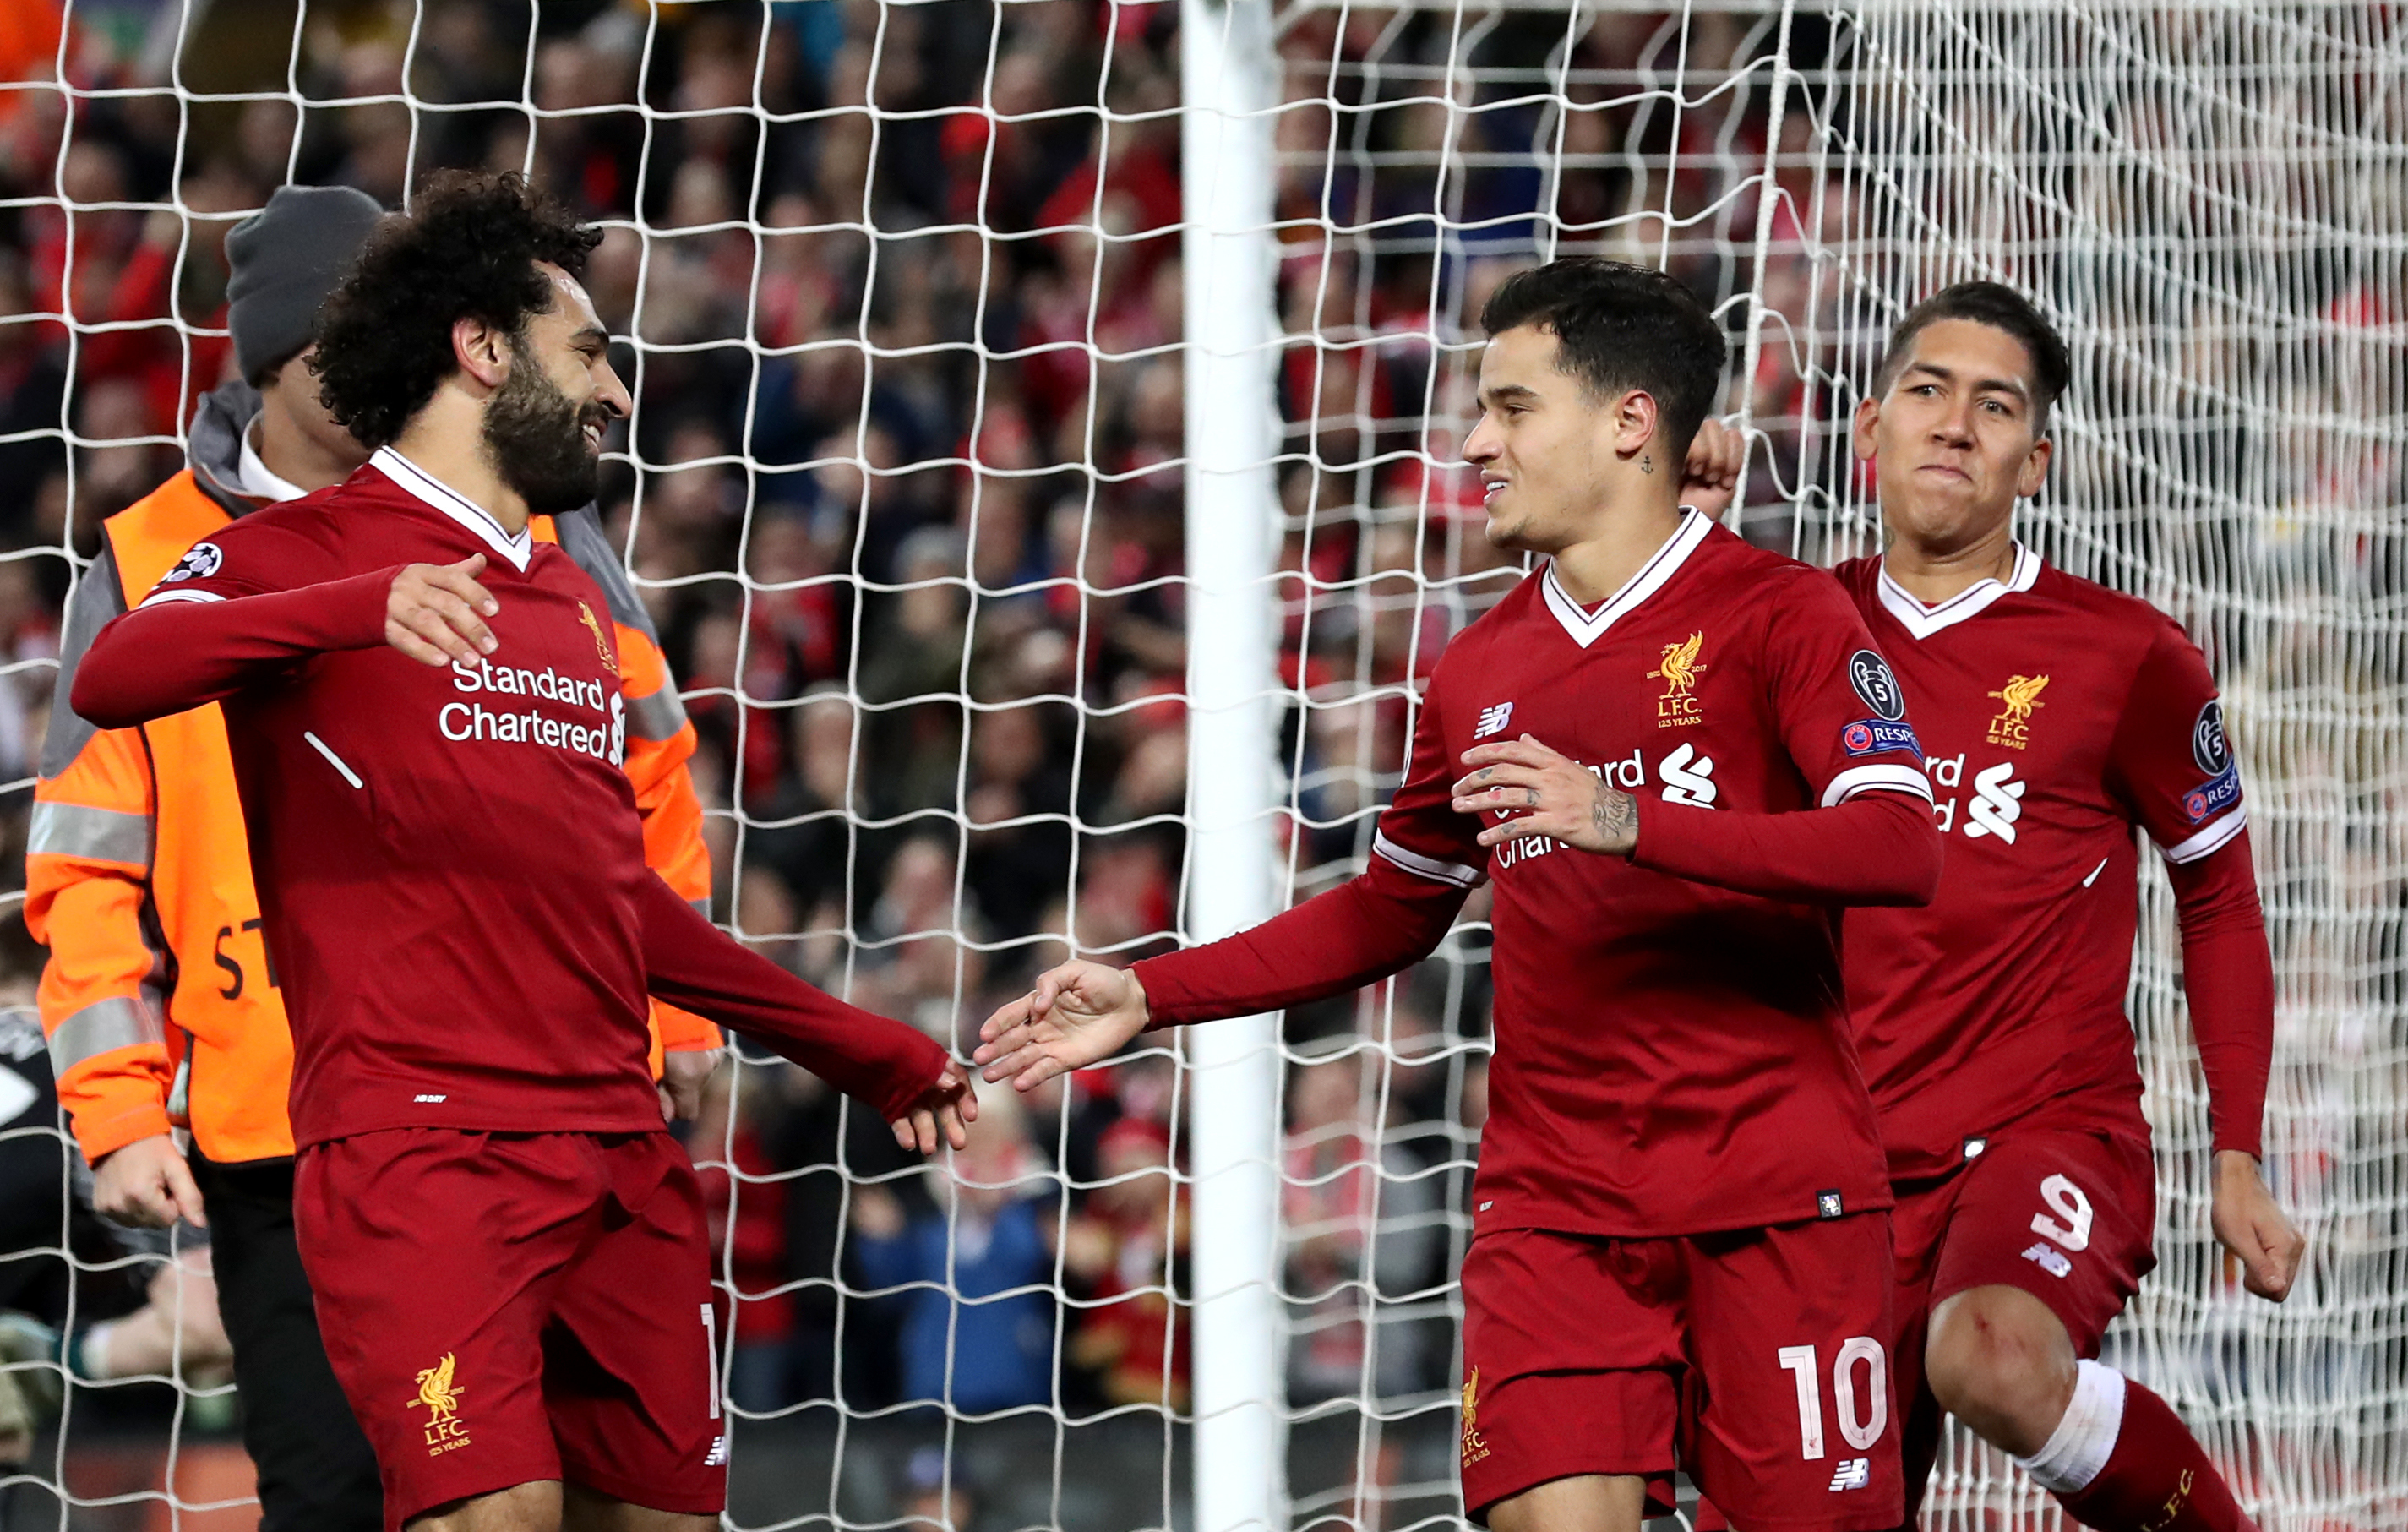 Liverpool No2 Krawietz admits Barcelona pressure created 'unhappy' Coutinho situation